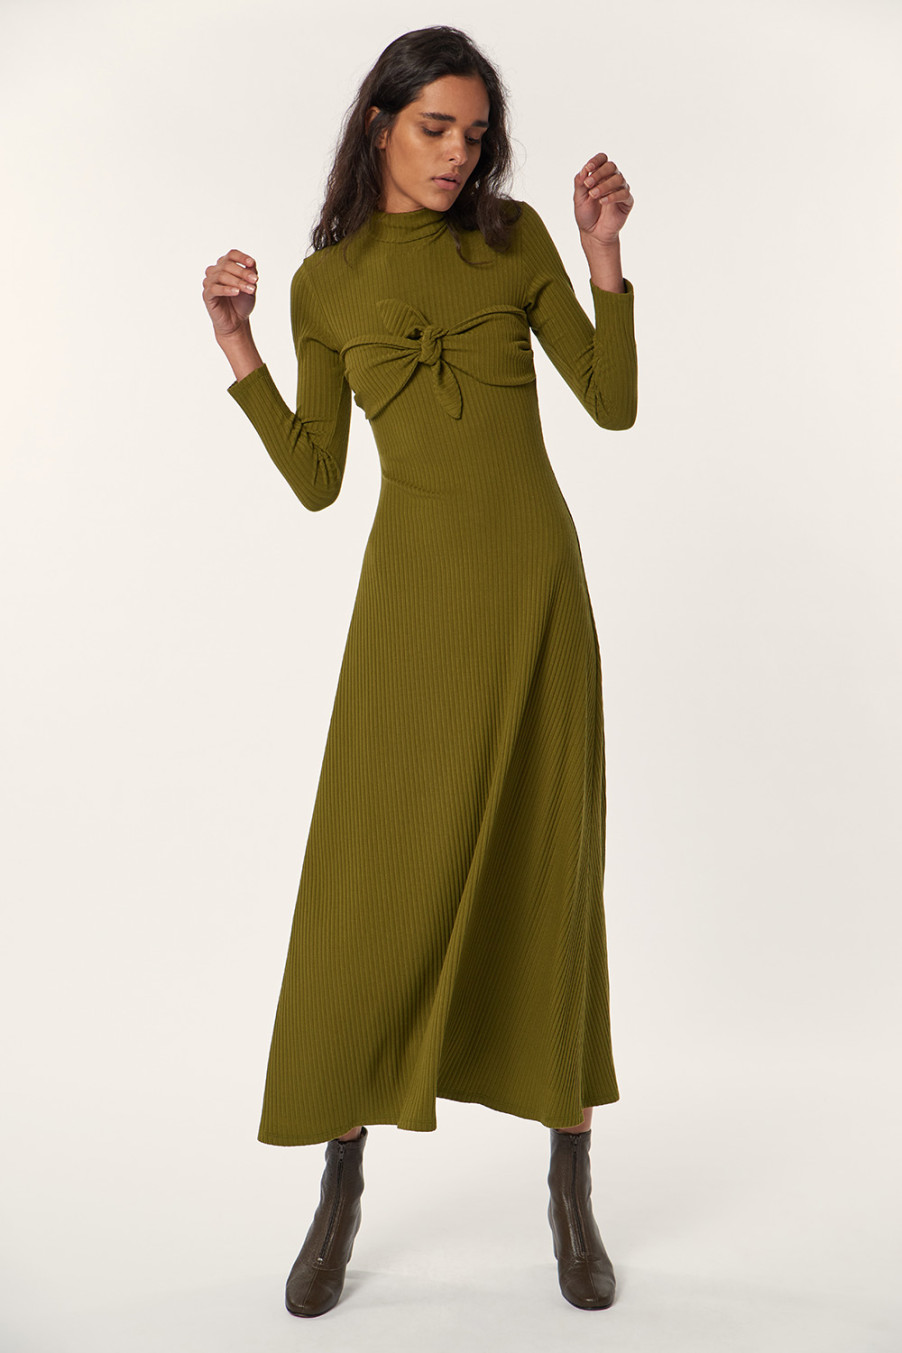 Beautiful olive sustainable dress with bow